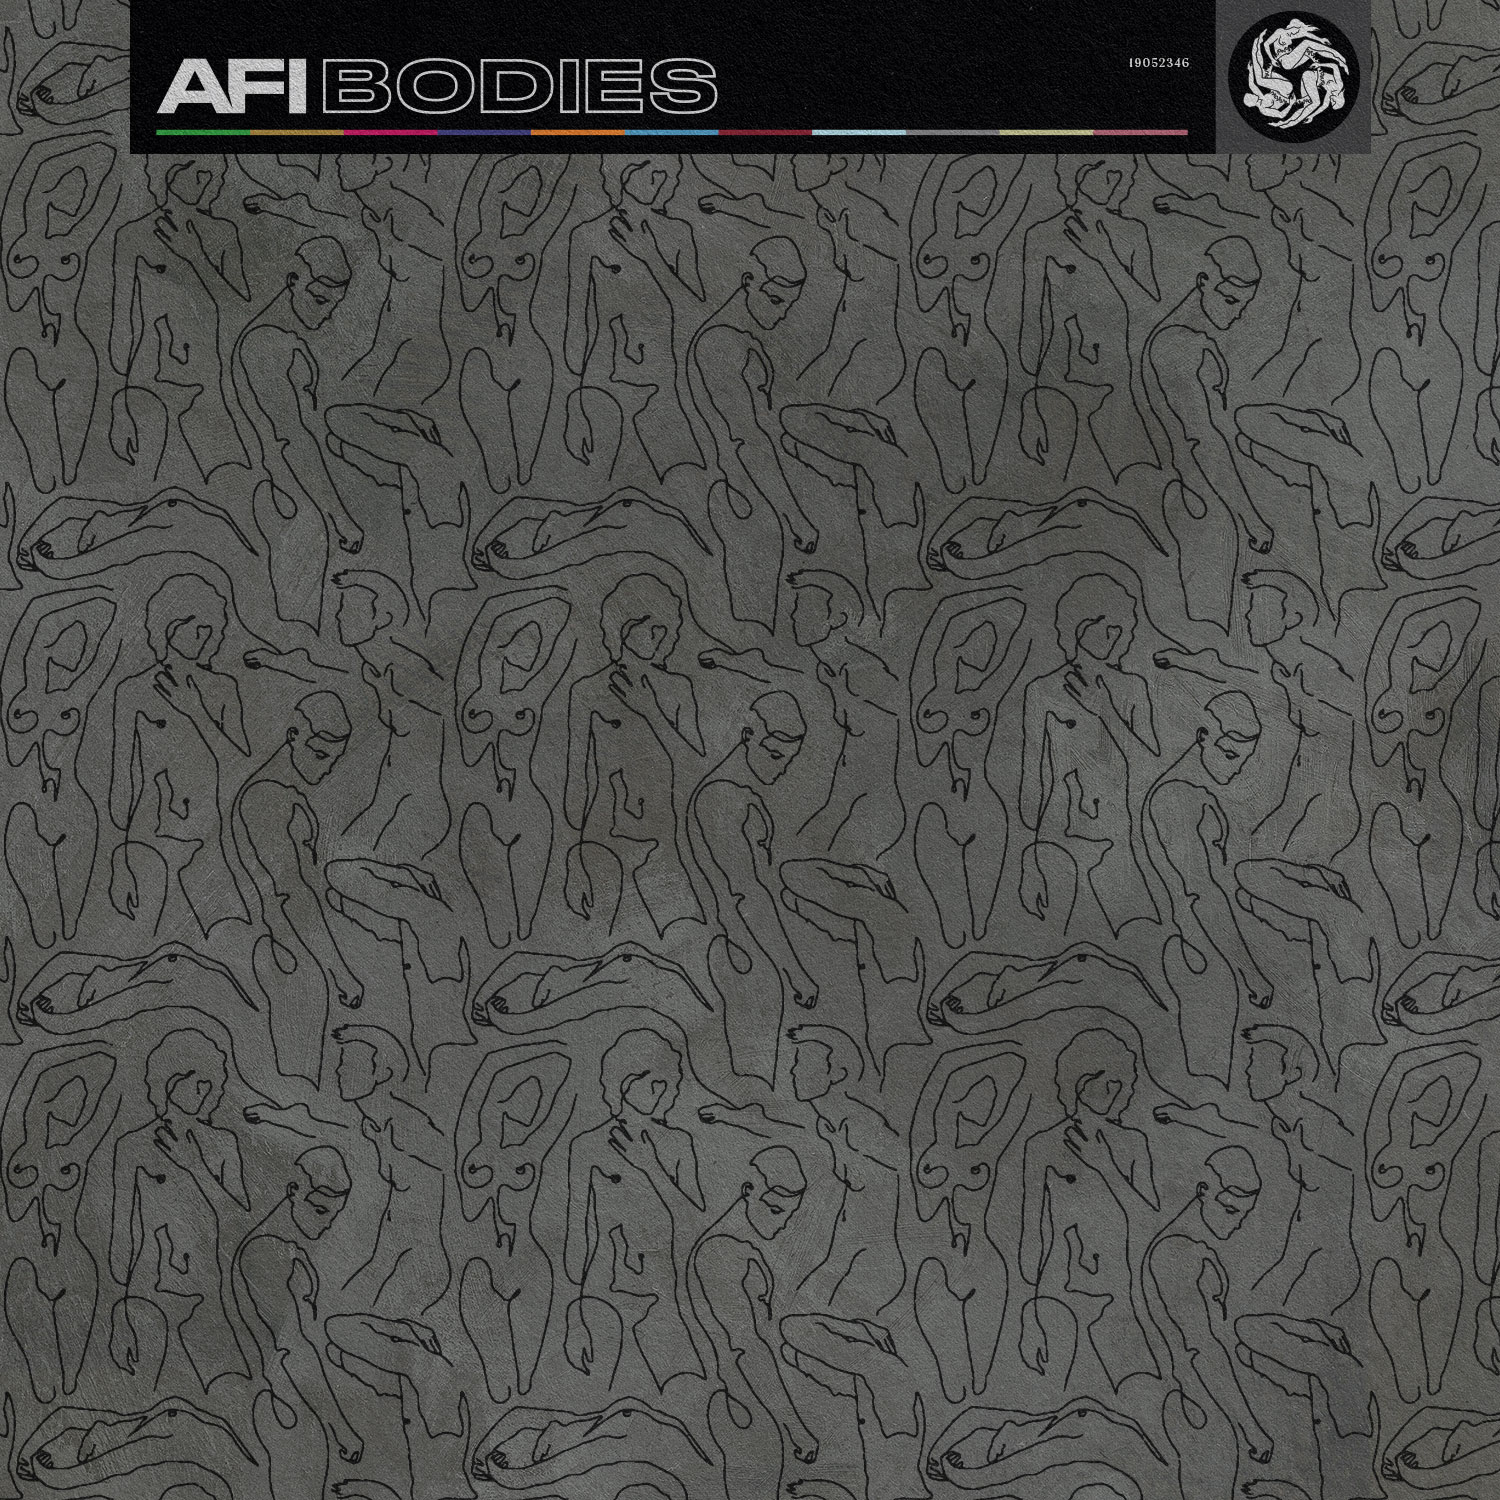 AFI - BODIES - Out June 11